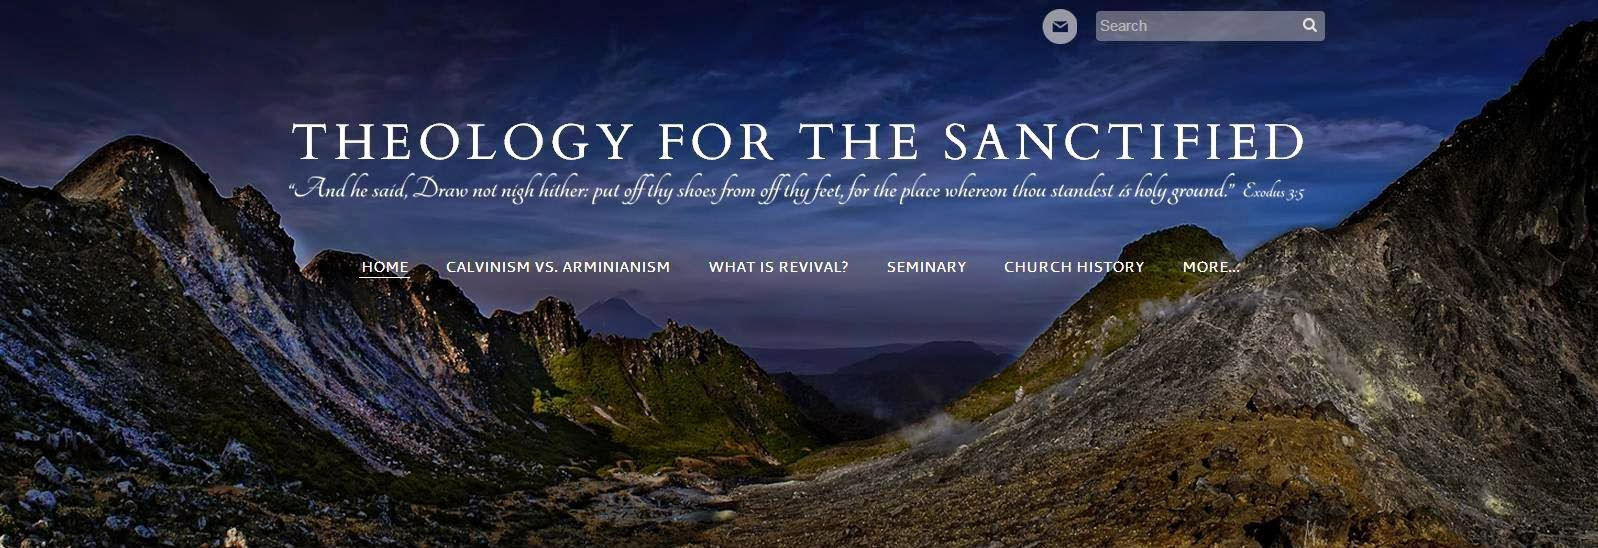 Theology for the Sanctified